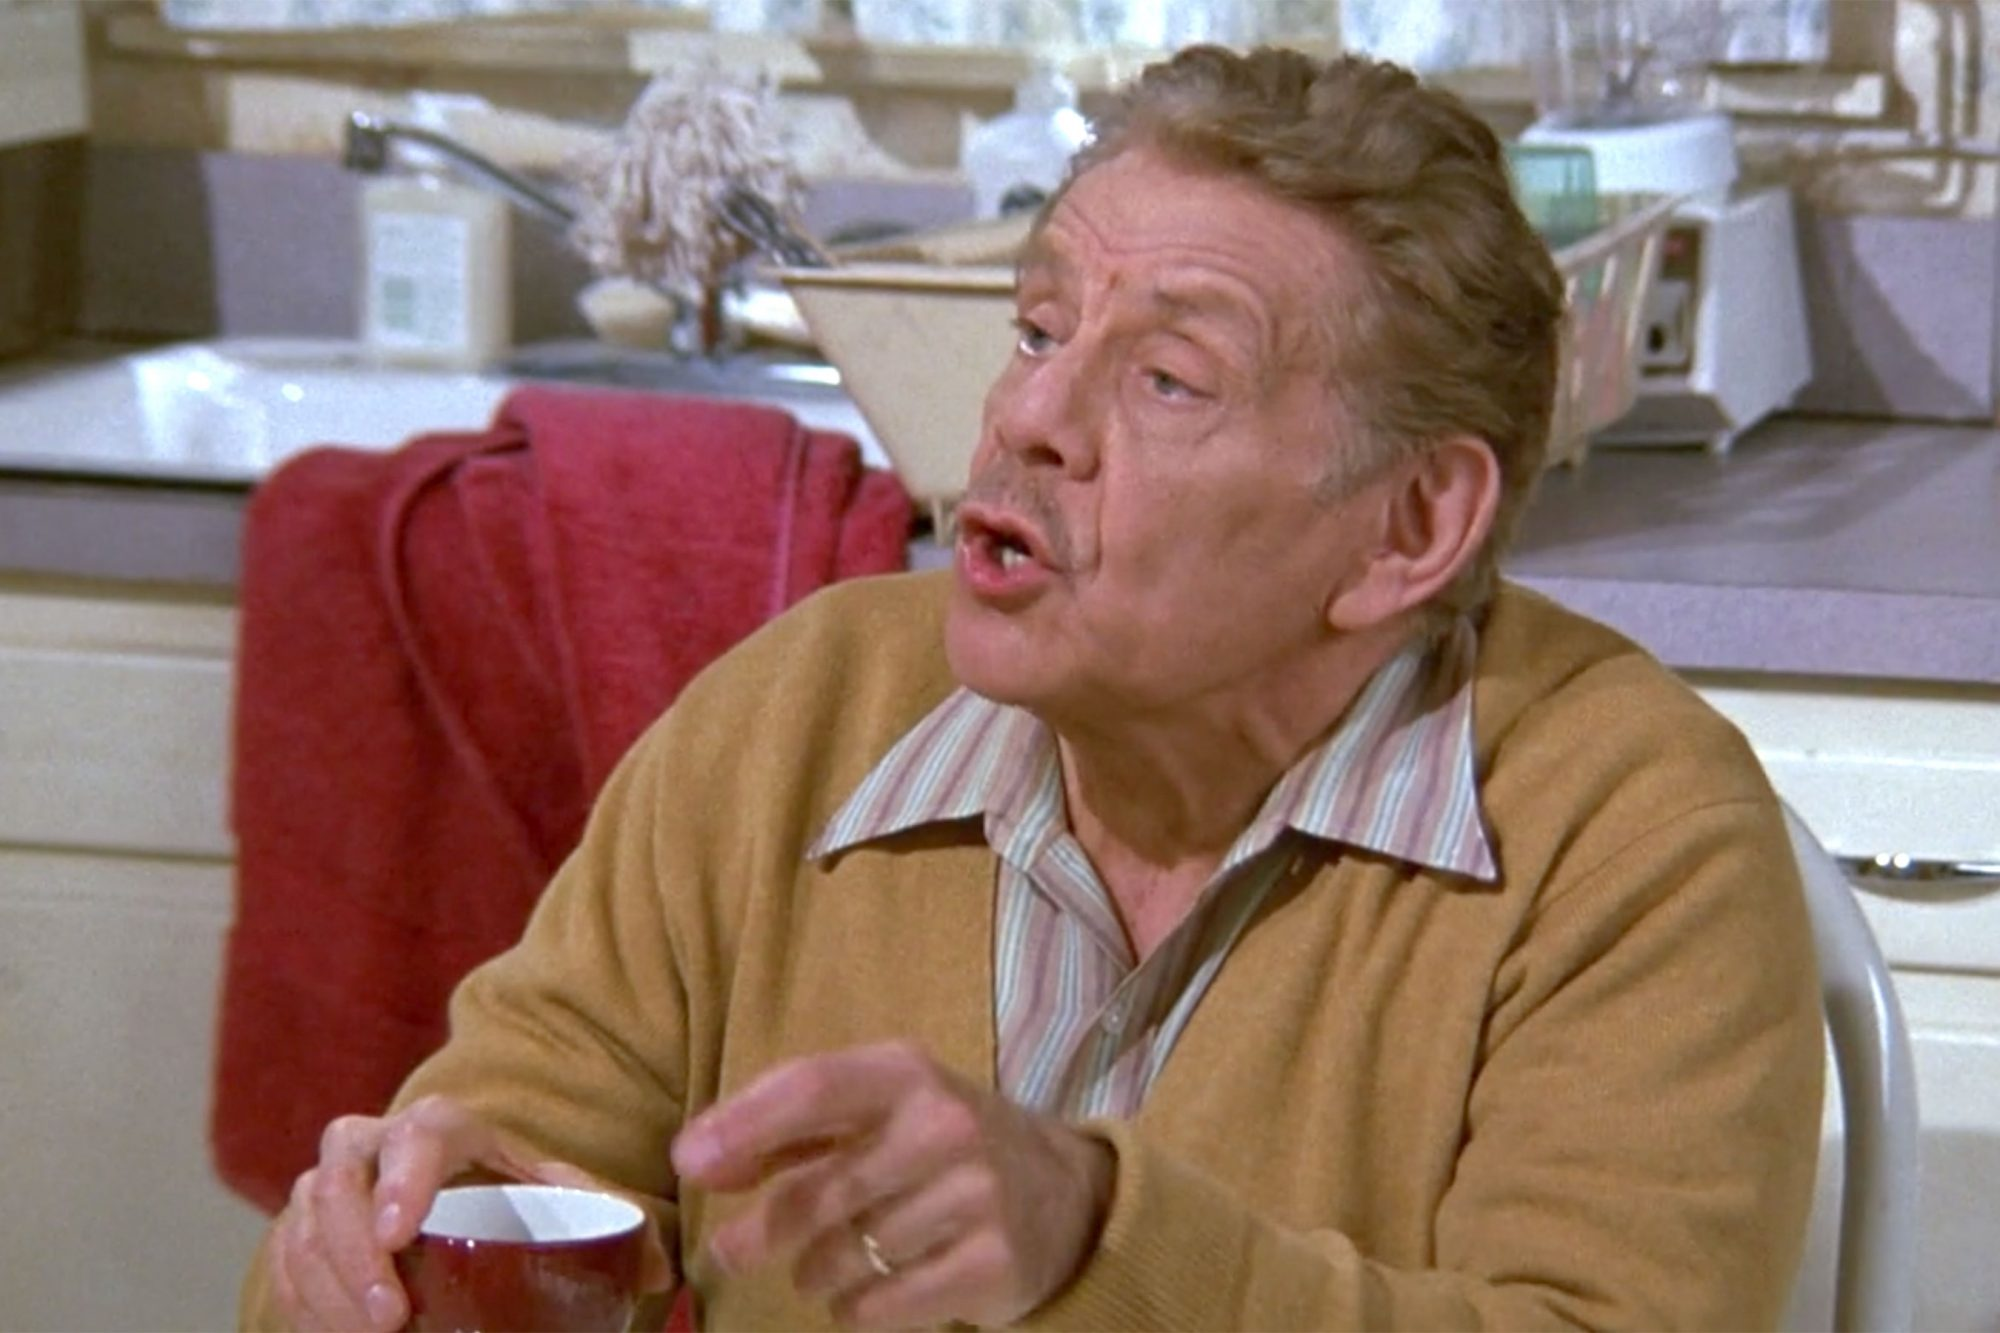 17. Jerry Stiller as Frank Costanza